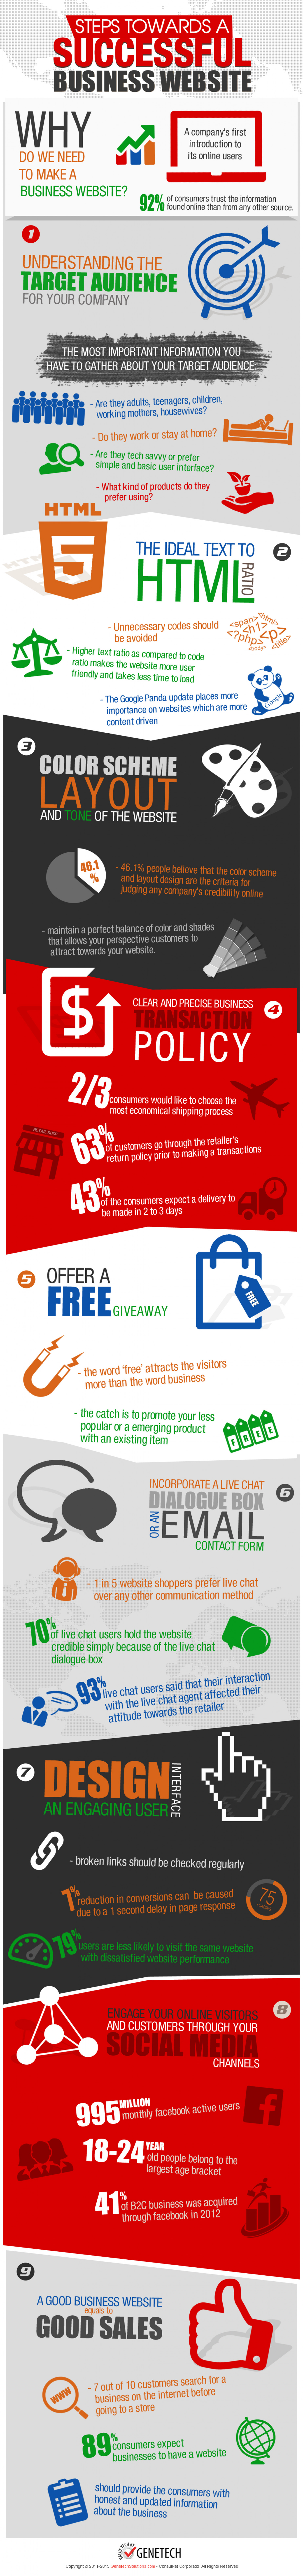 Steps Towards a Successful Business Website Infographic